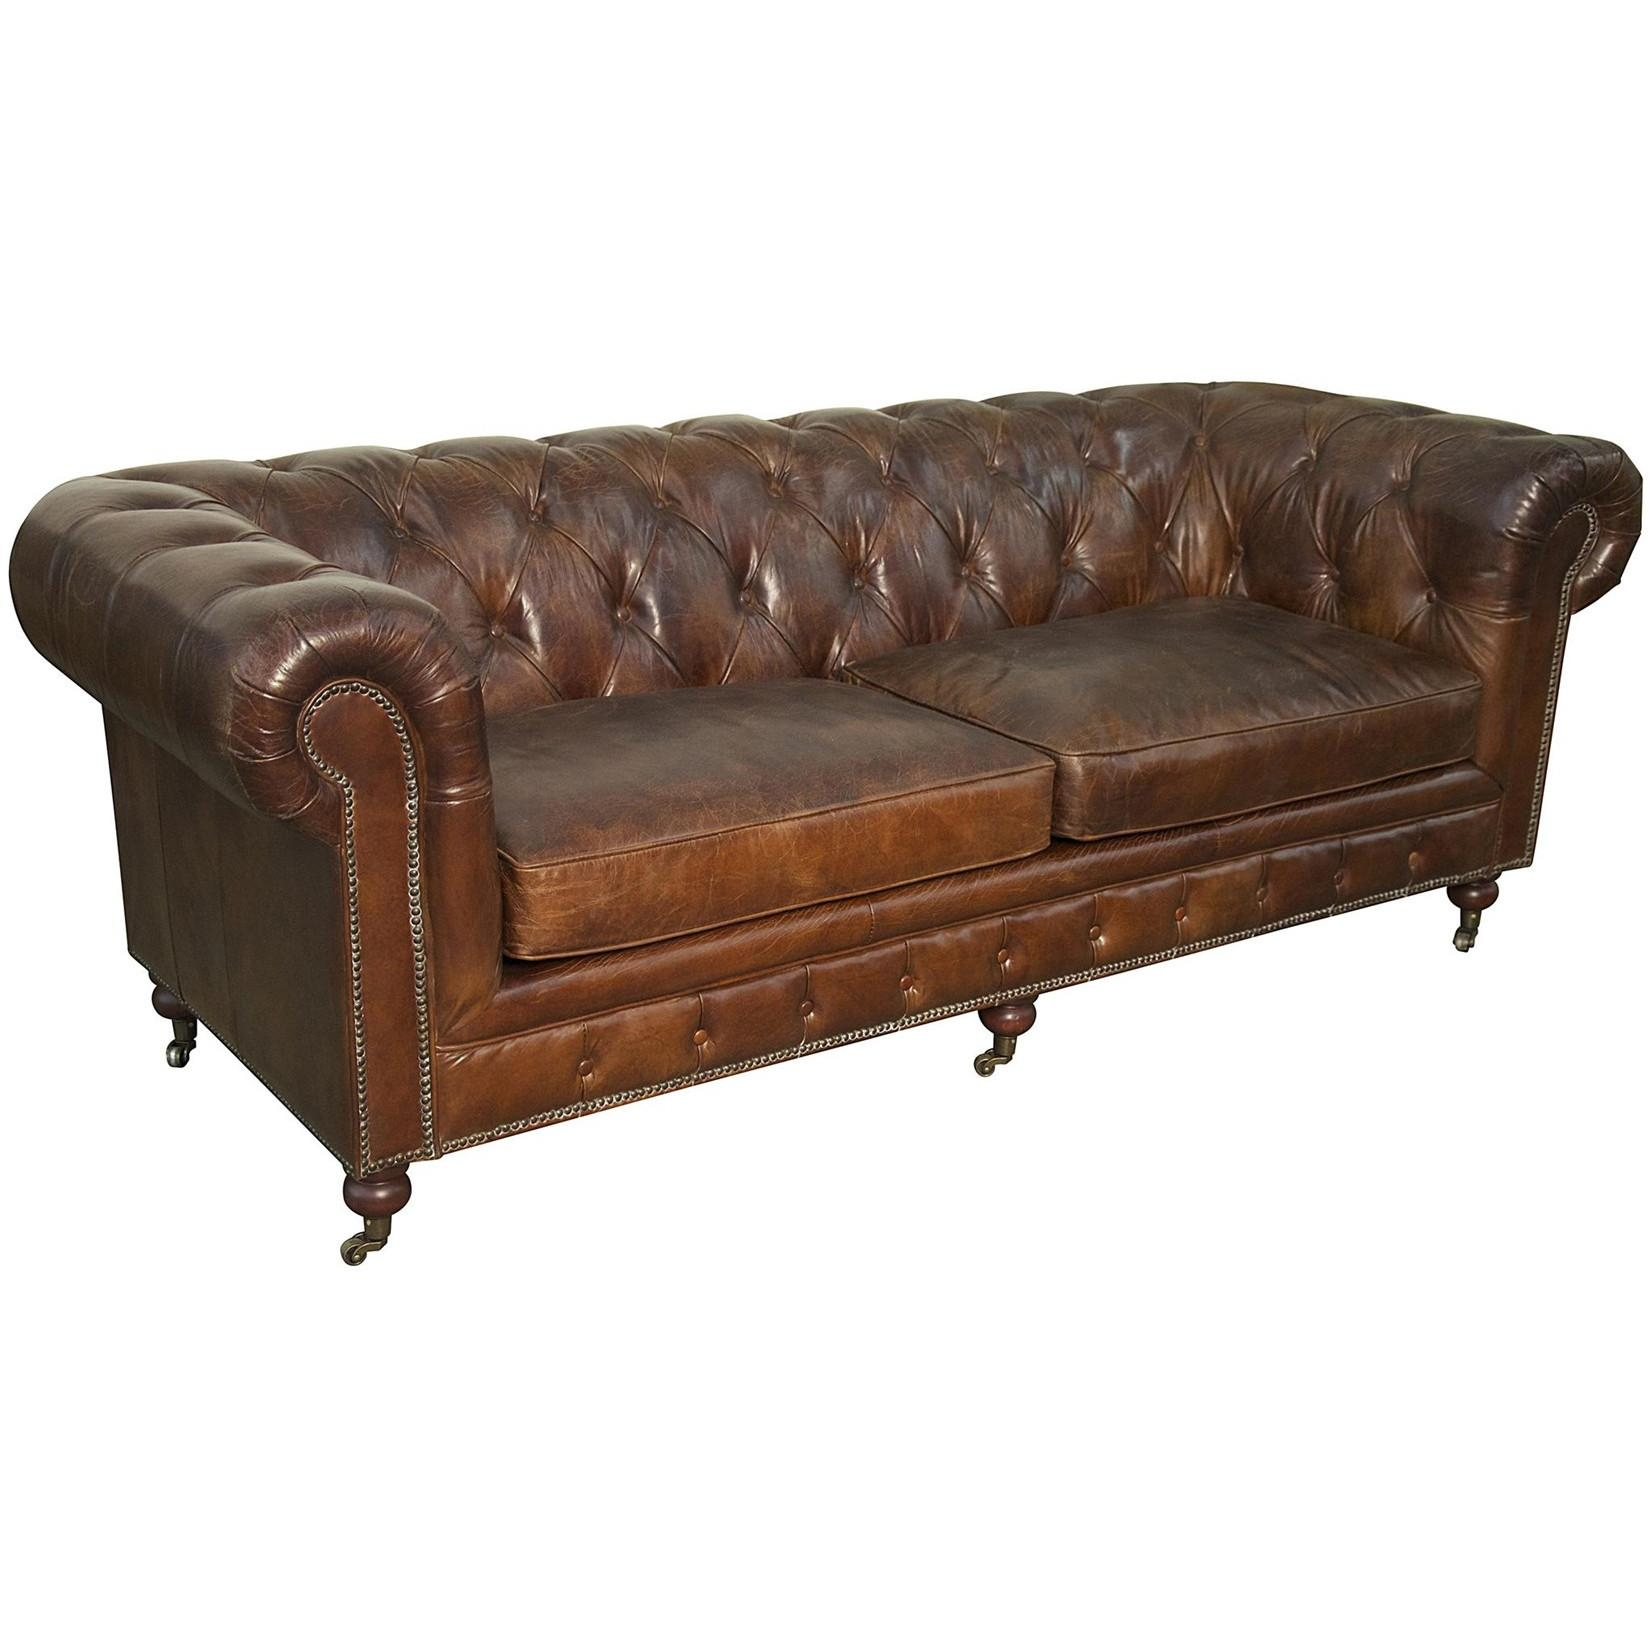 Furniture: Exquisite Comfort With Leather Tufted Sofa Pertaining To Brown Tufted Sofas (Image 11 of 20)